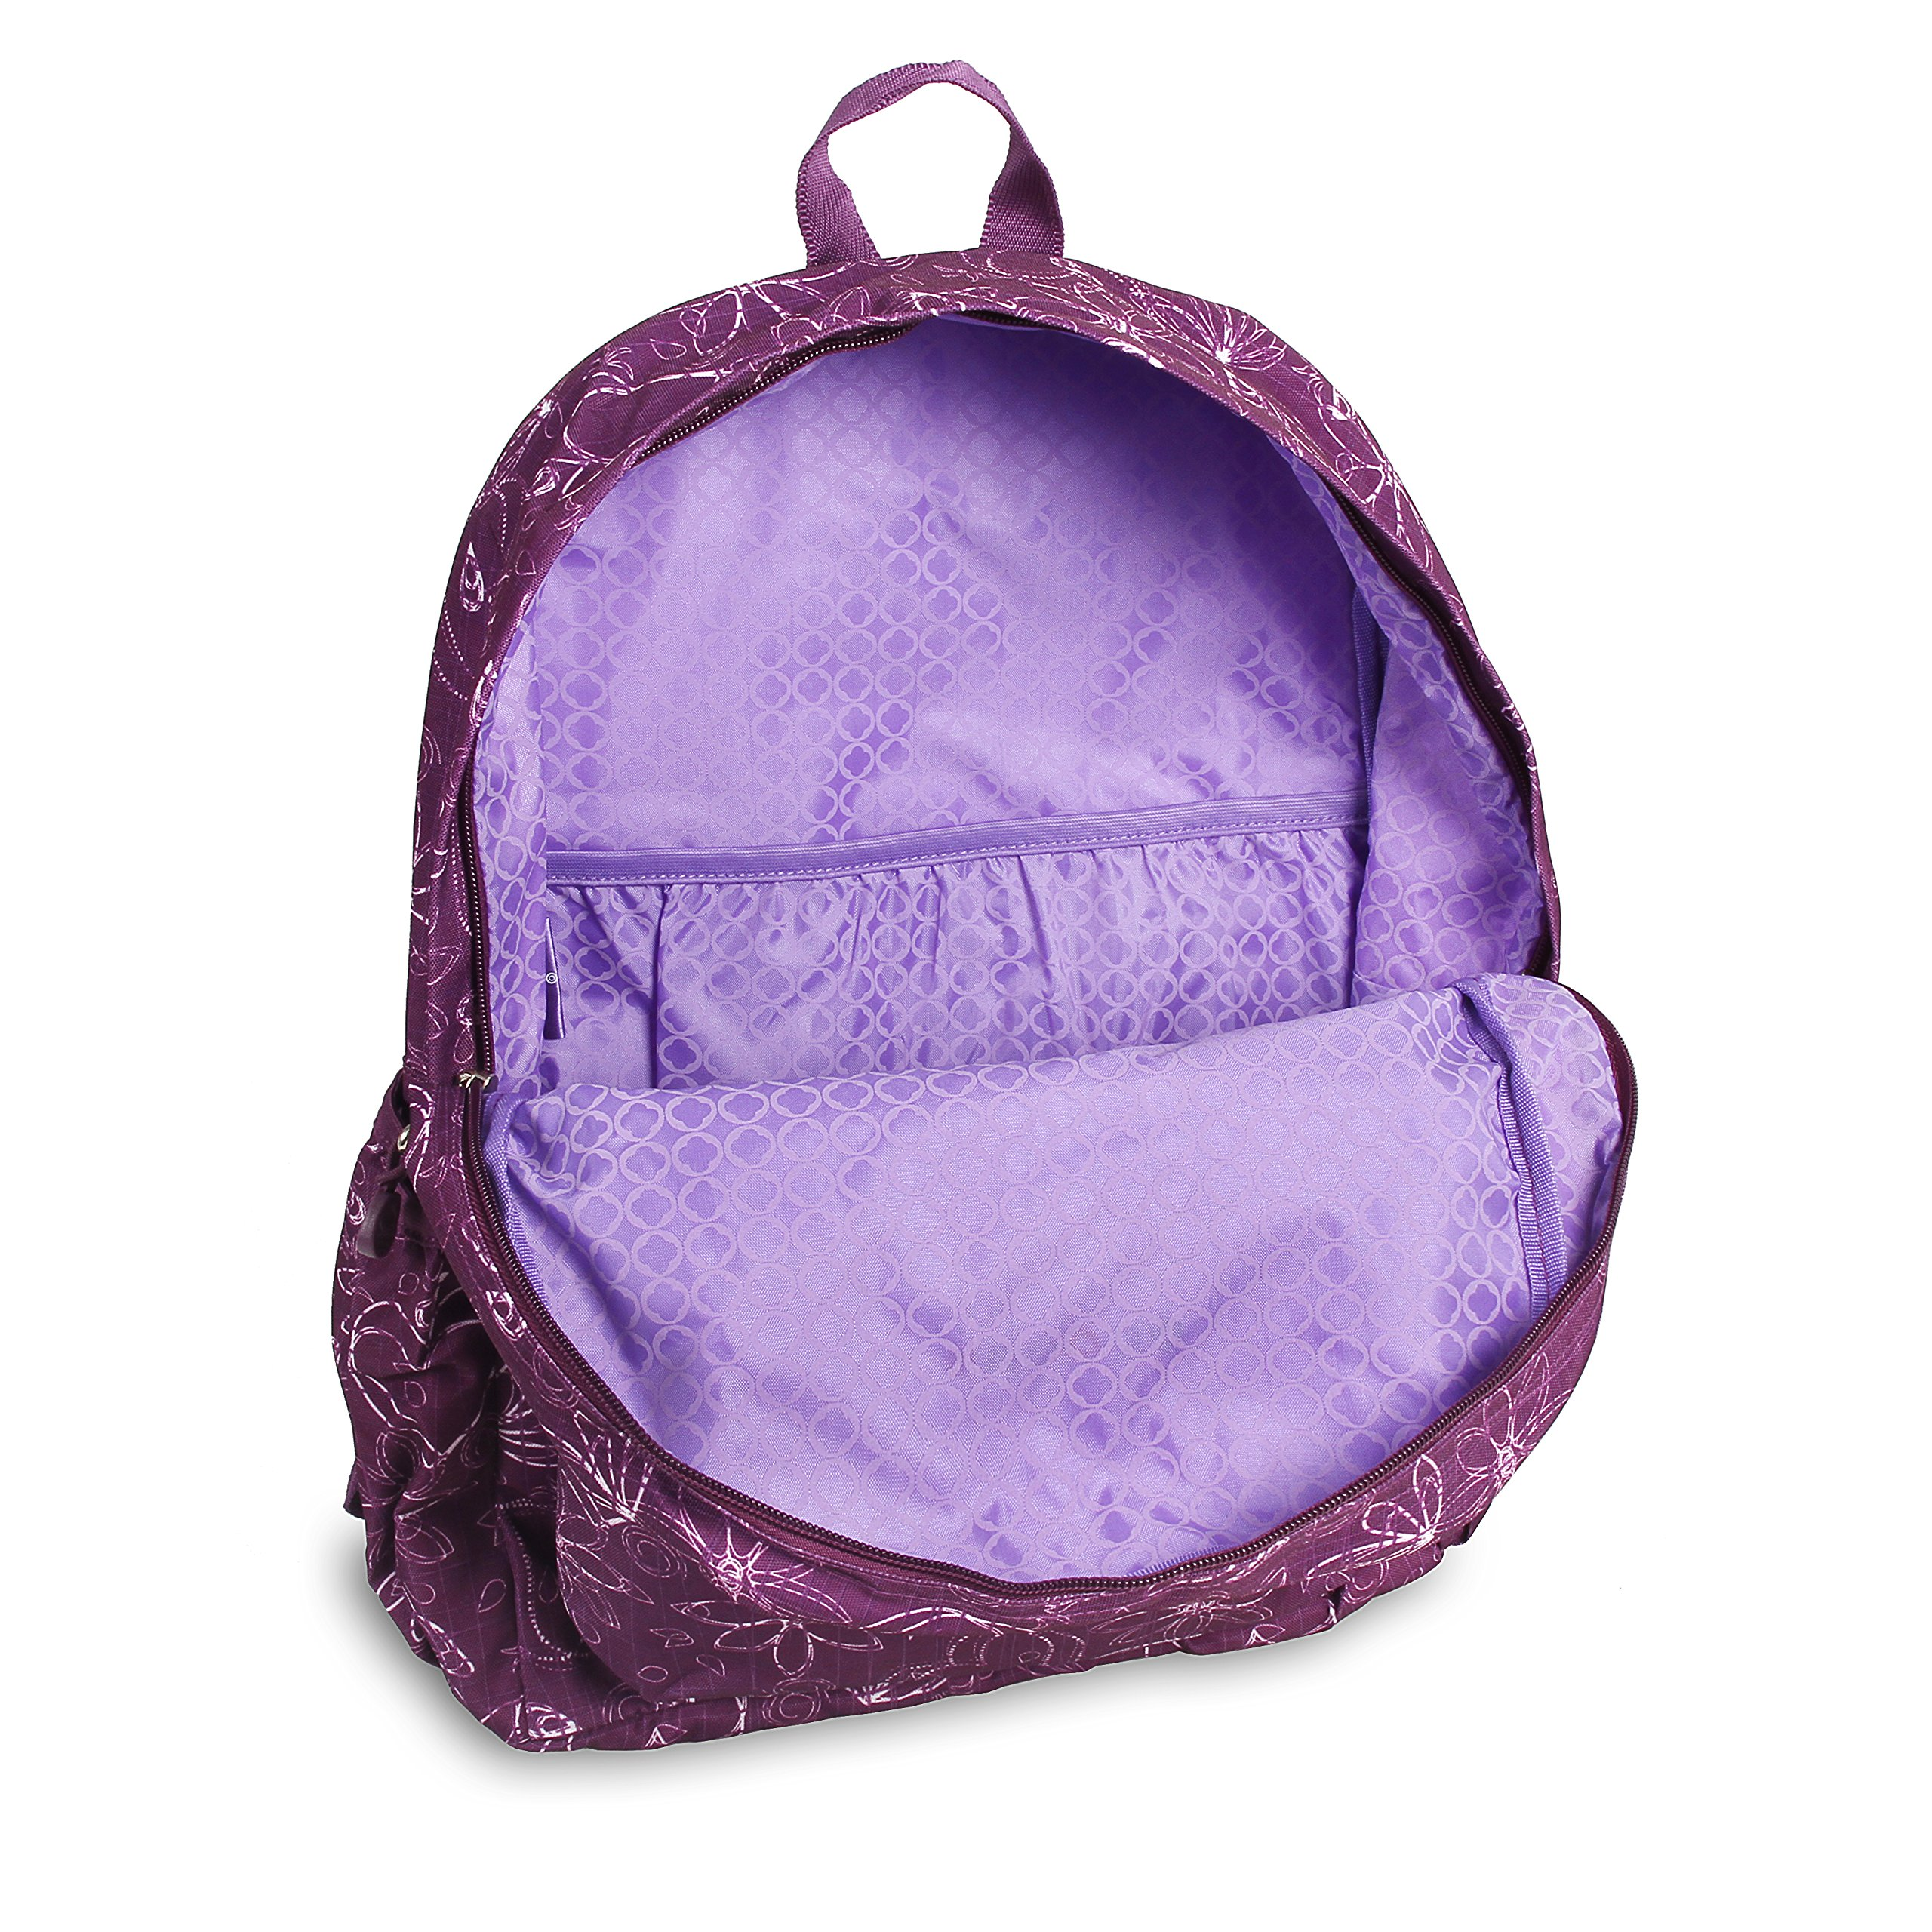 J World New York Oz Backpack, Love Purple by J World New York (Image #4)